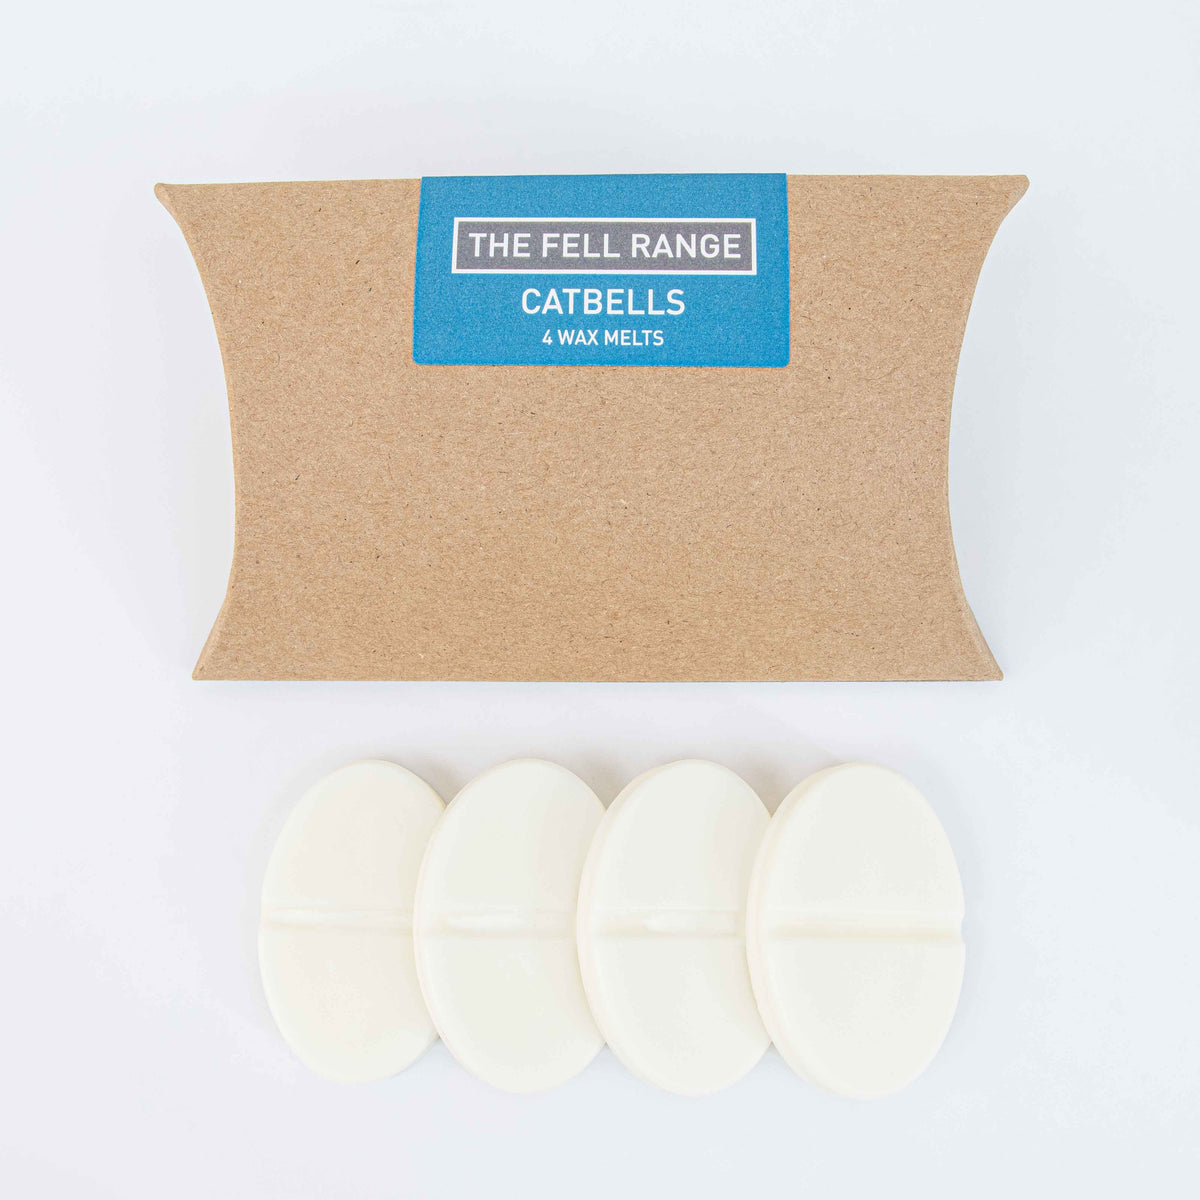 Catbells Wax Melts